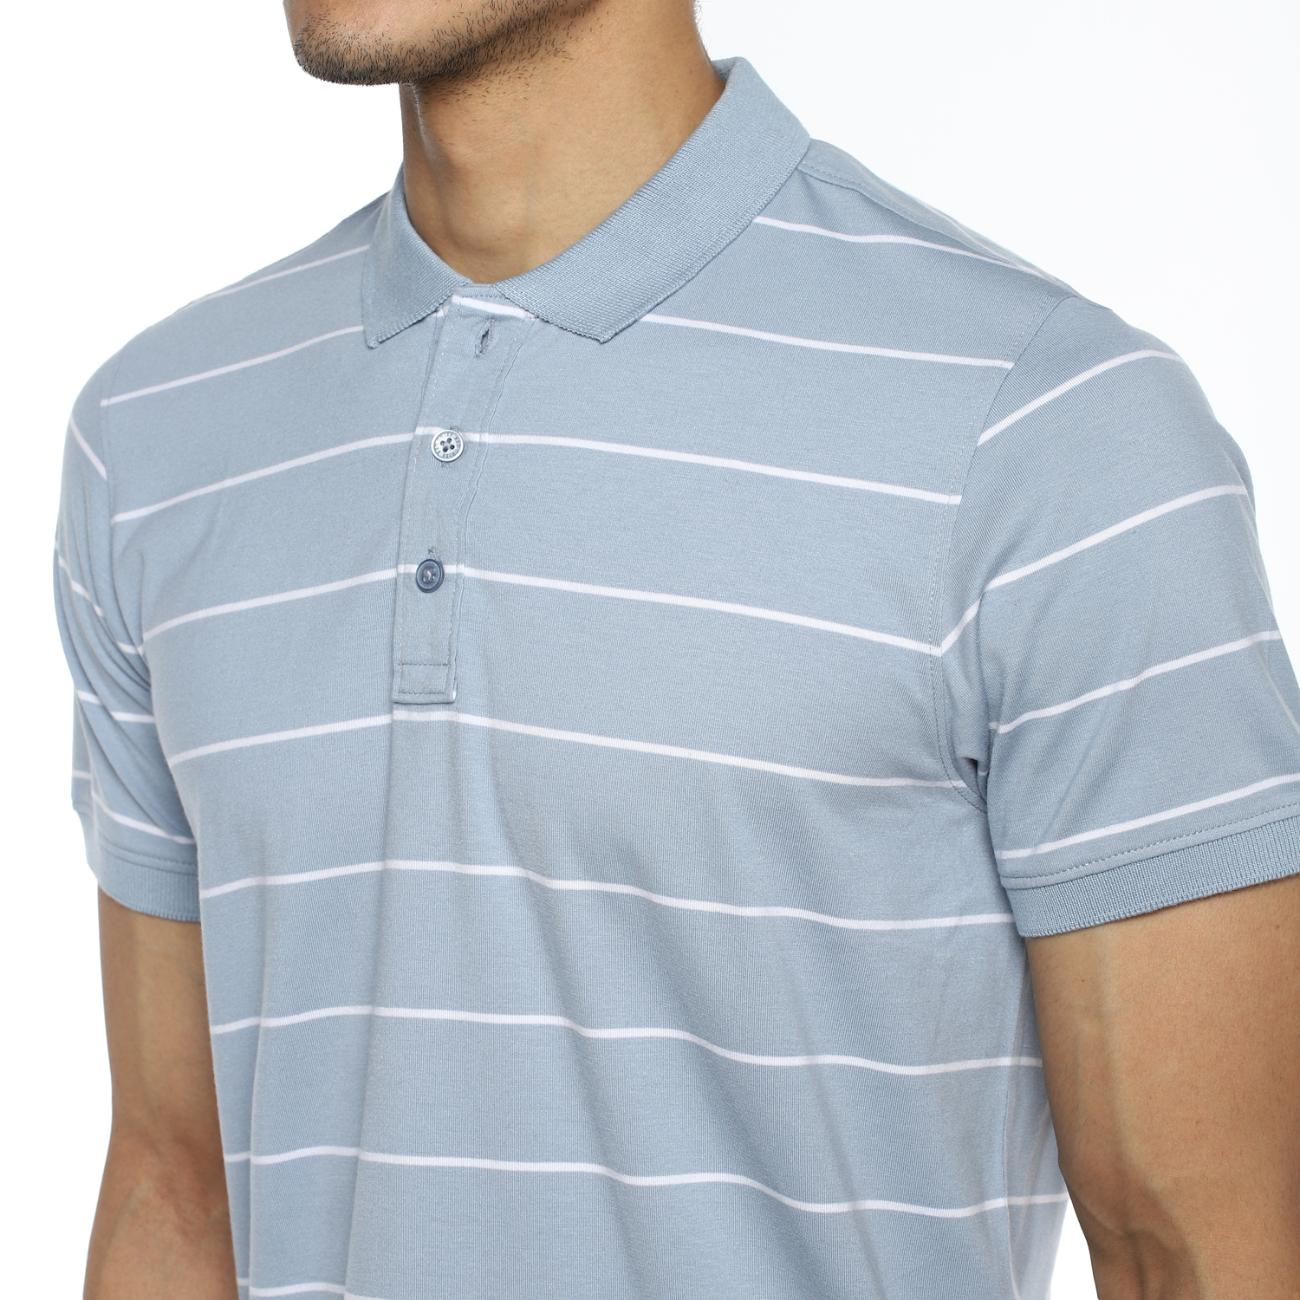 Casual TShirts for Men